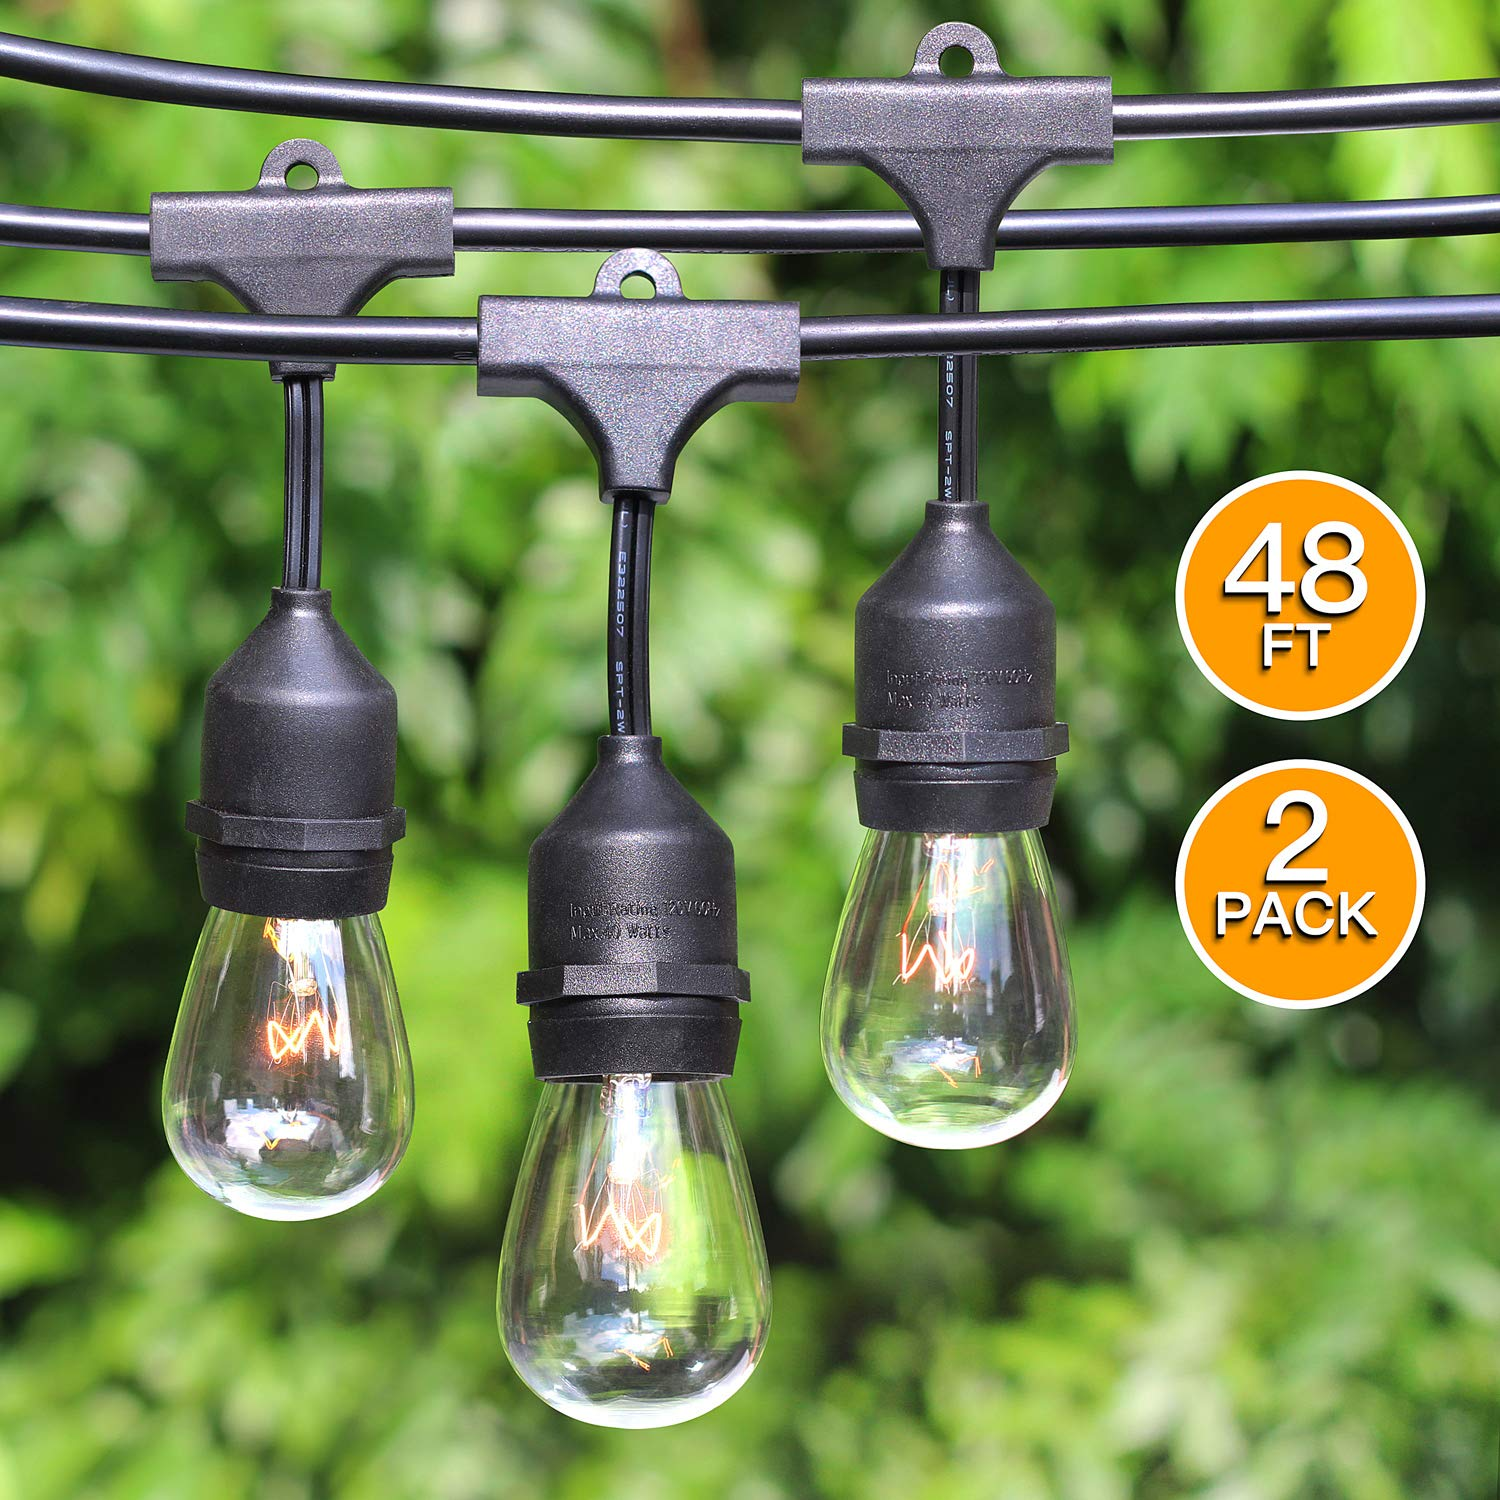 2-Pack 48Ft Heavy Duty Outdoor Patio String lights, Edison Vintage Dimmable 11S14 Bulbs w/ Hanging Sockets, Commercial Grade Weatherproof Market Cafe Lights for Bistro Backyard Pergola Party, Blk